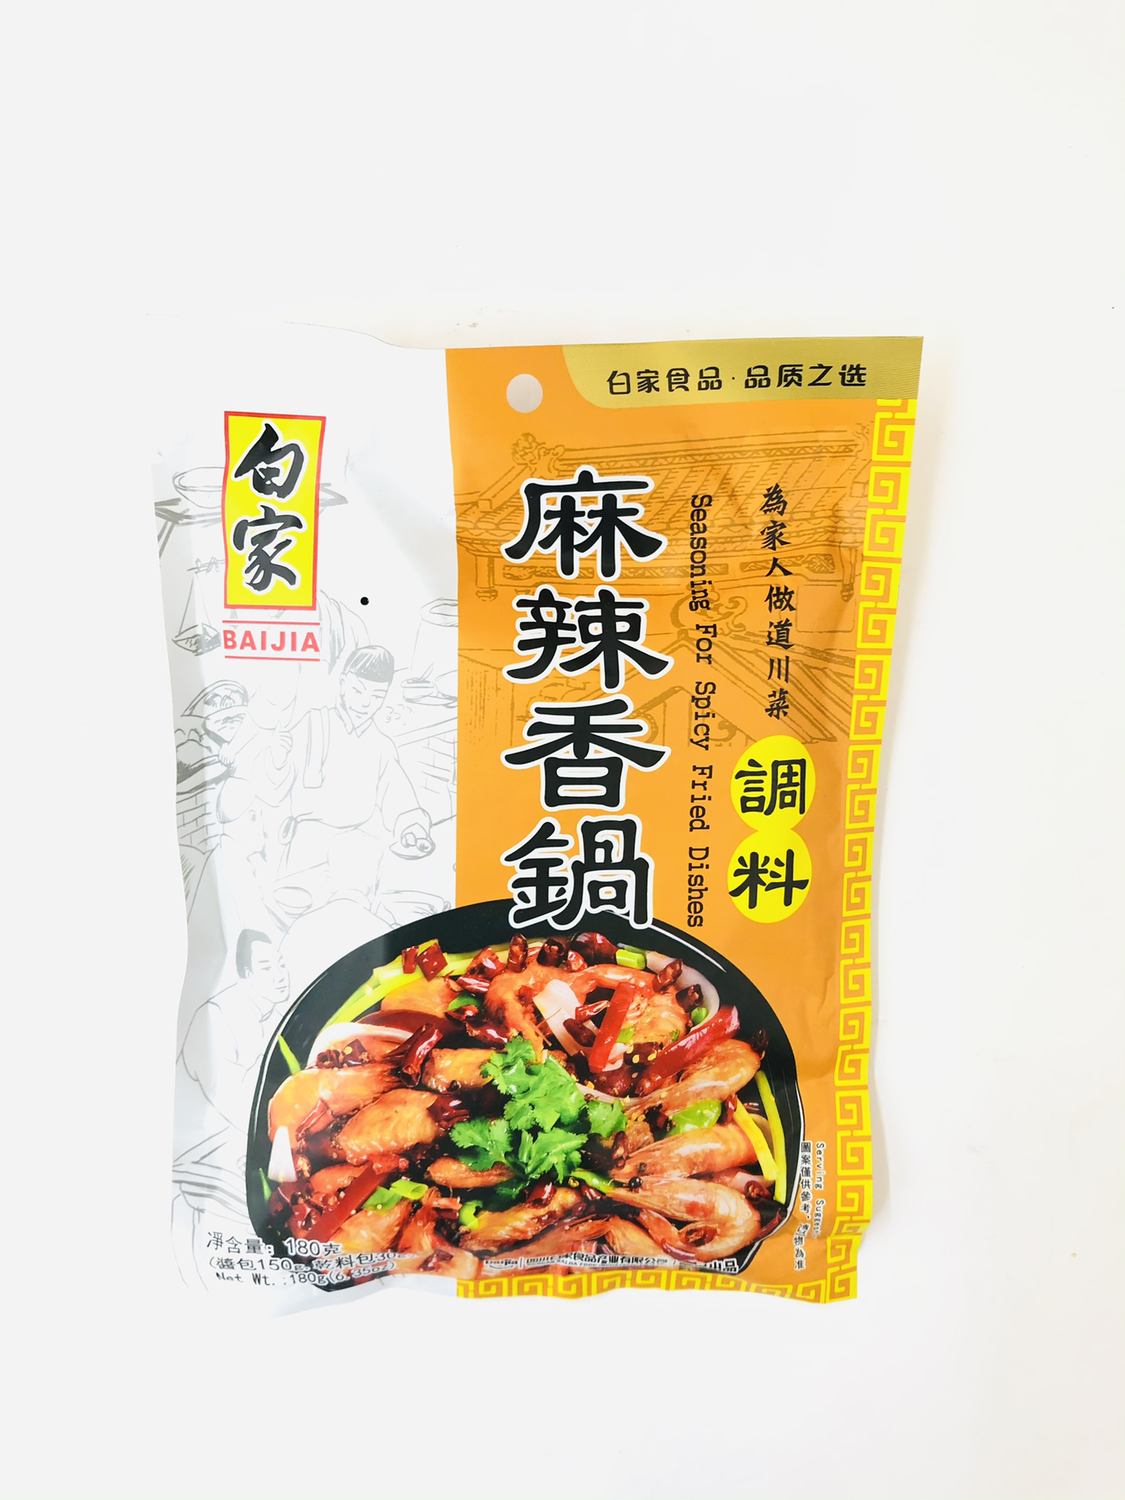 白家 麻辣香锅调料 BAIJIA Seasoning For Spicy Fried Dishes 180g(6.35oz)